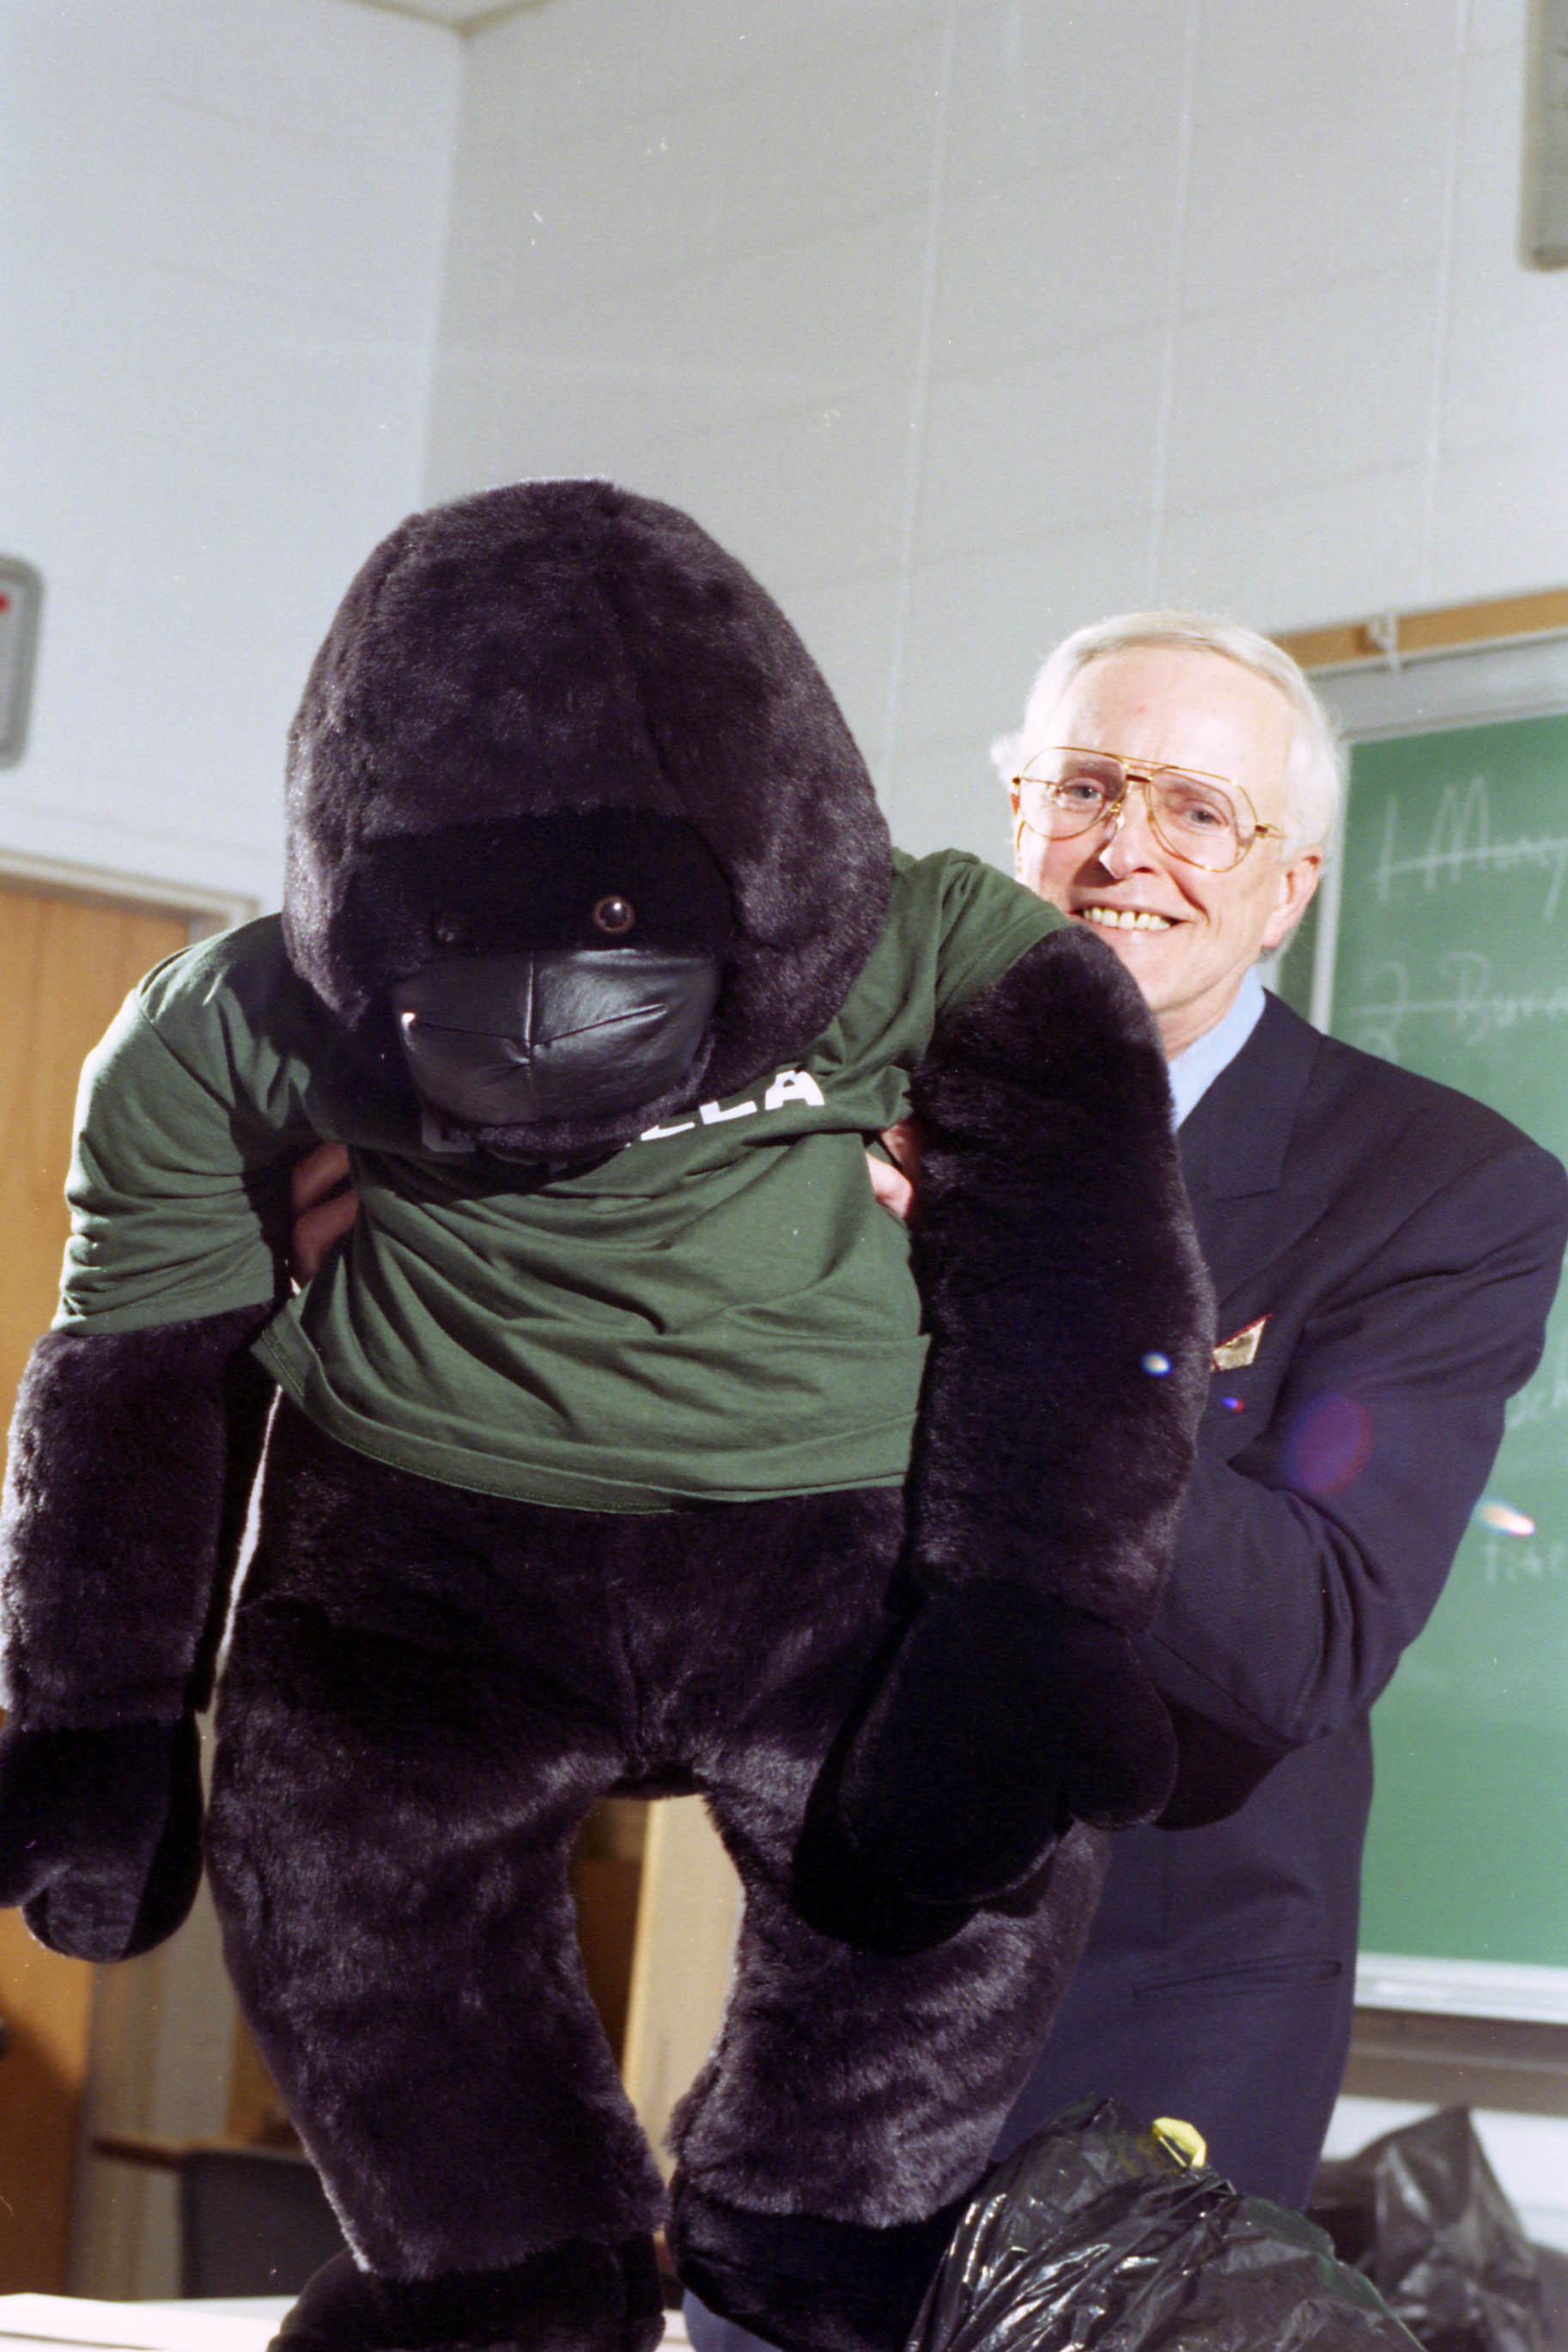 Richard Osborne holding stuffed gorilla